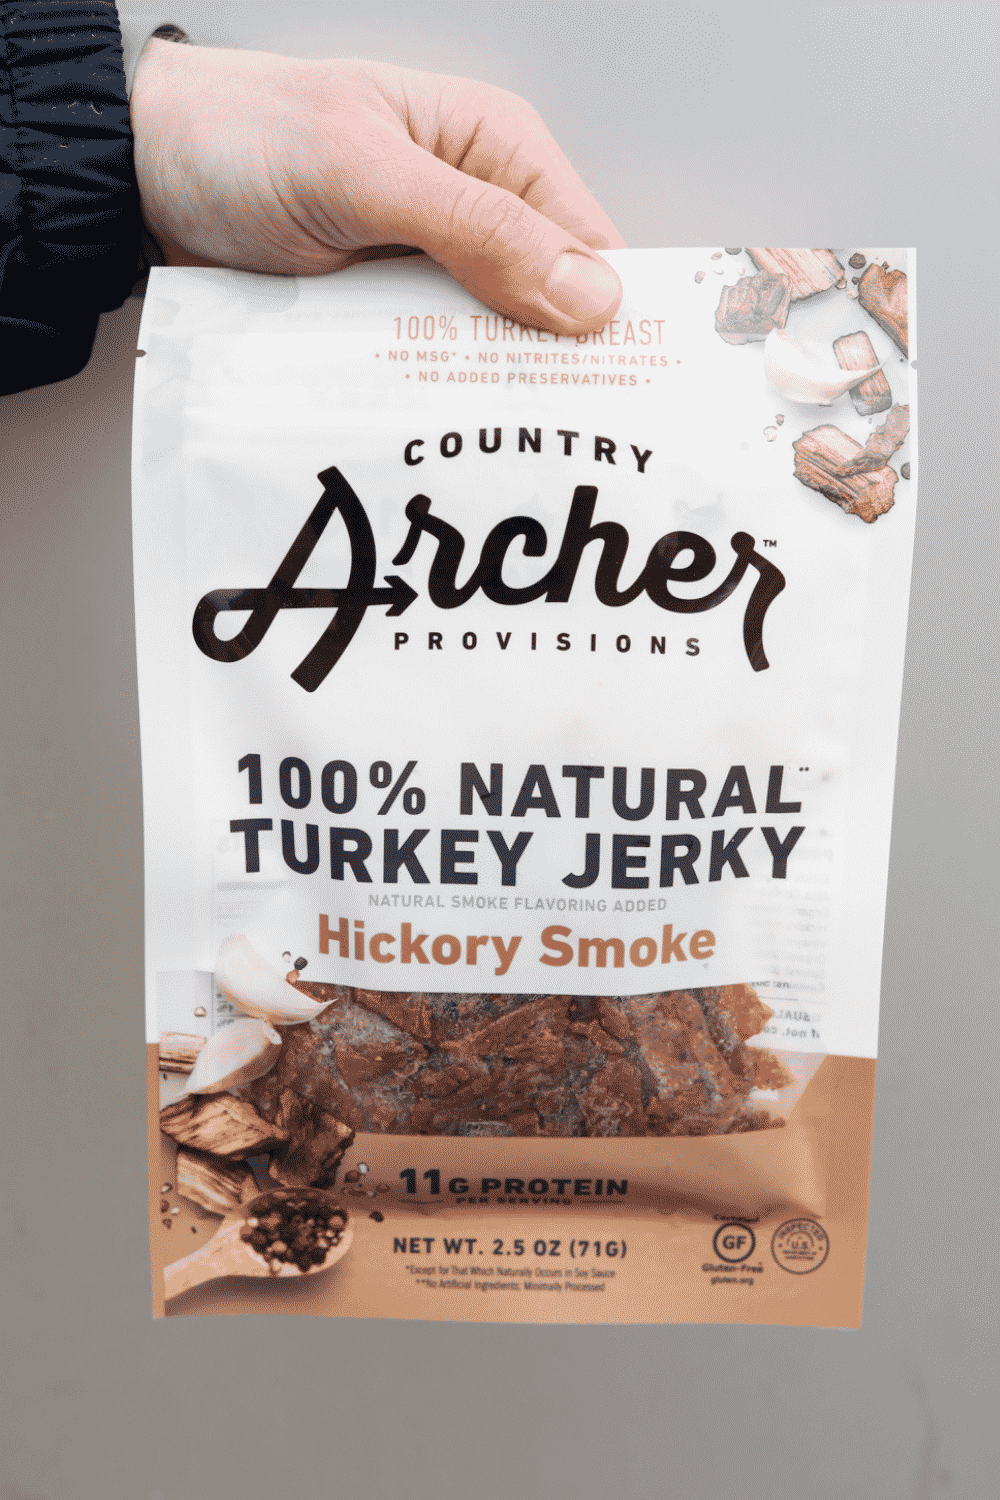 A hand holding a bag of country archer provisions hundred percent natural turkey jerky hickory smoke flavored.